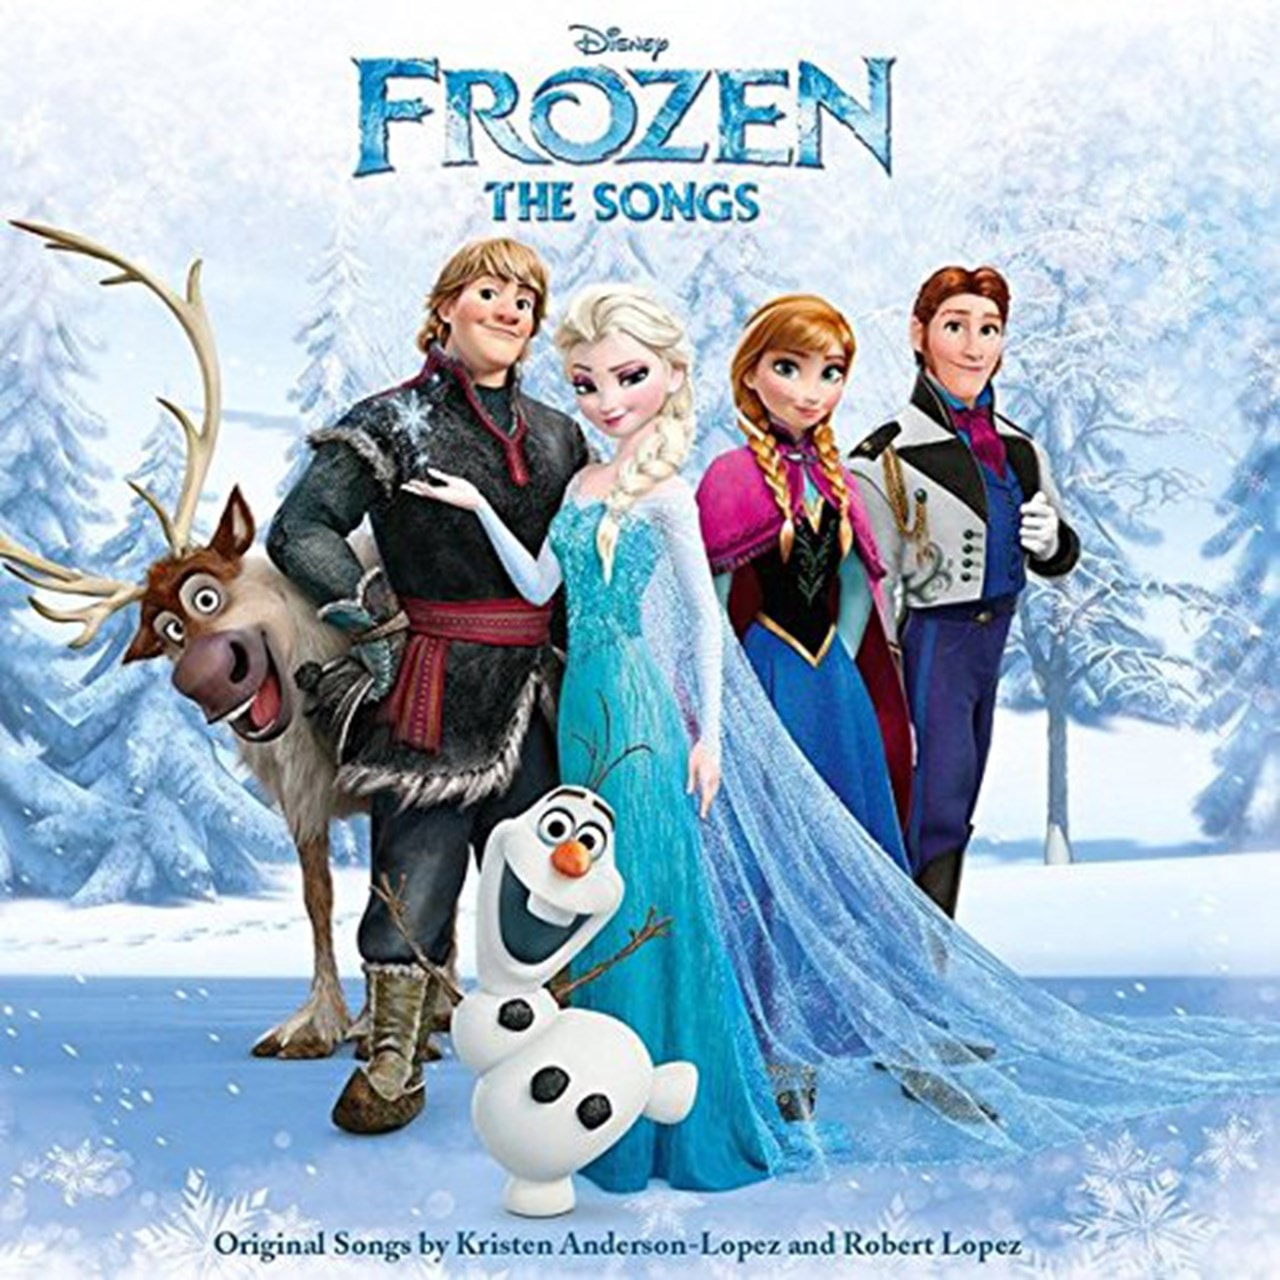 Frozen: The Songs - 1